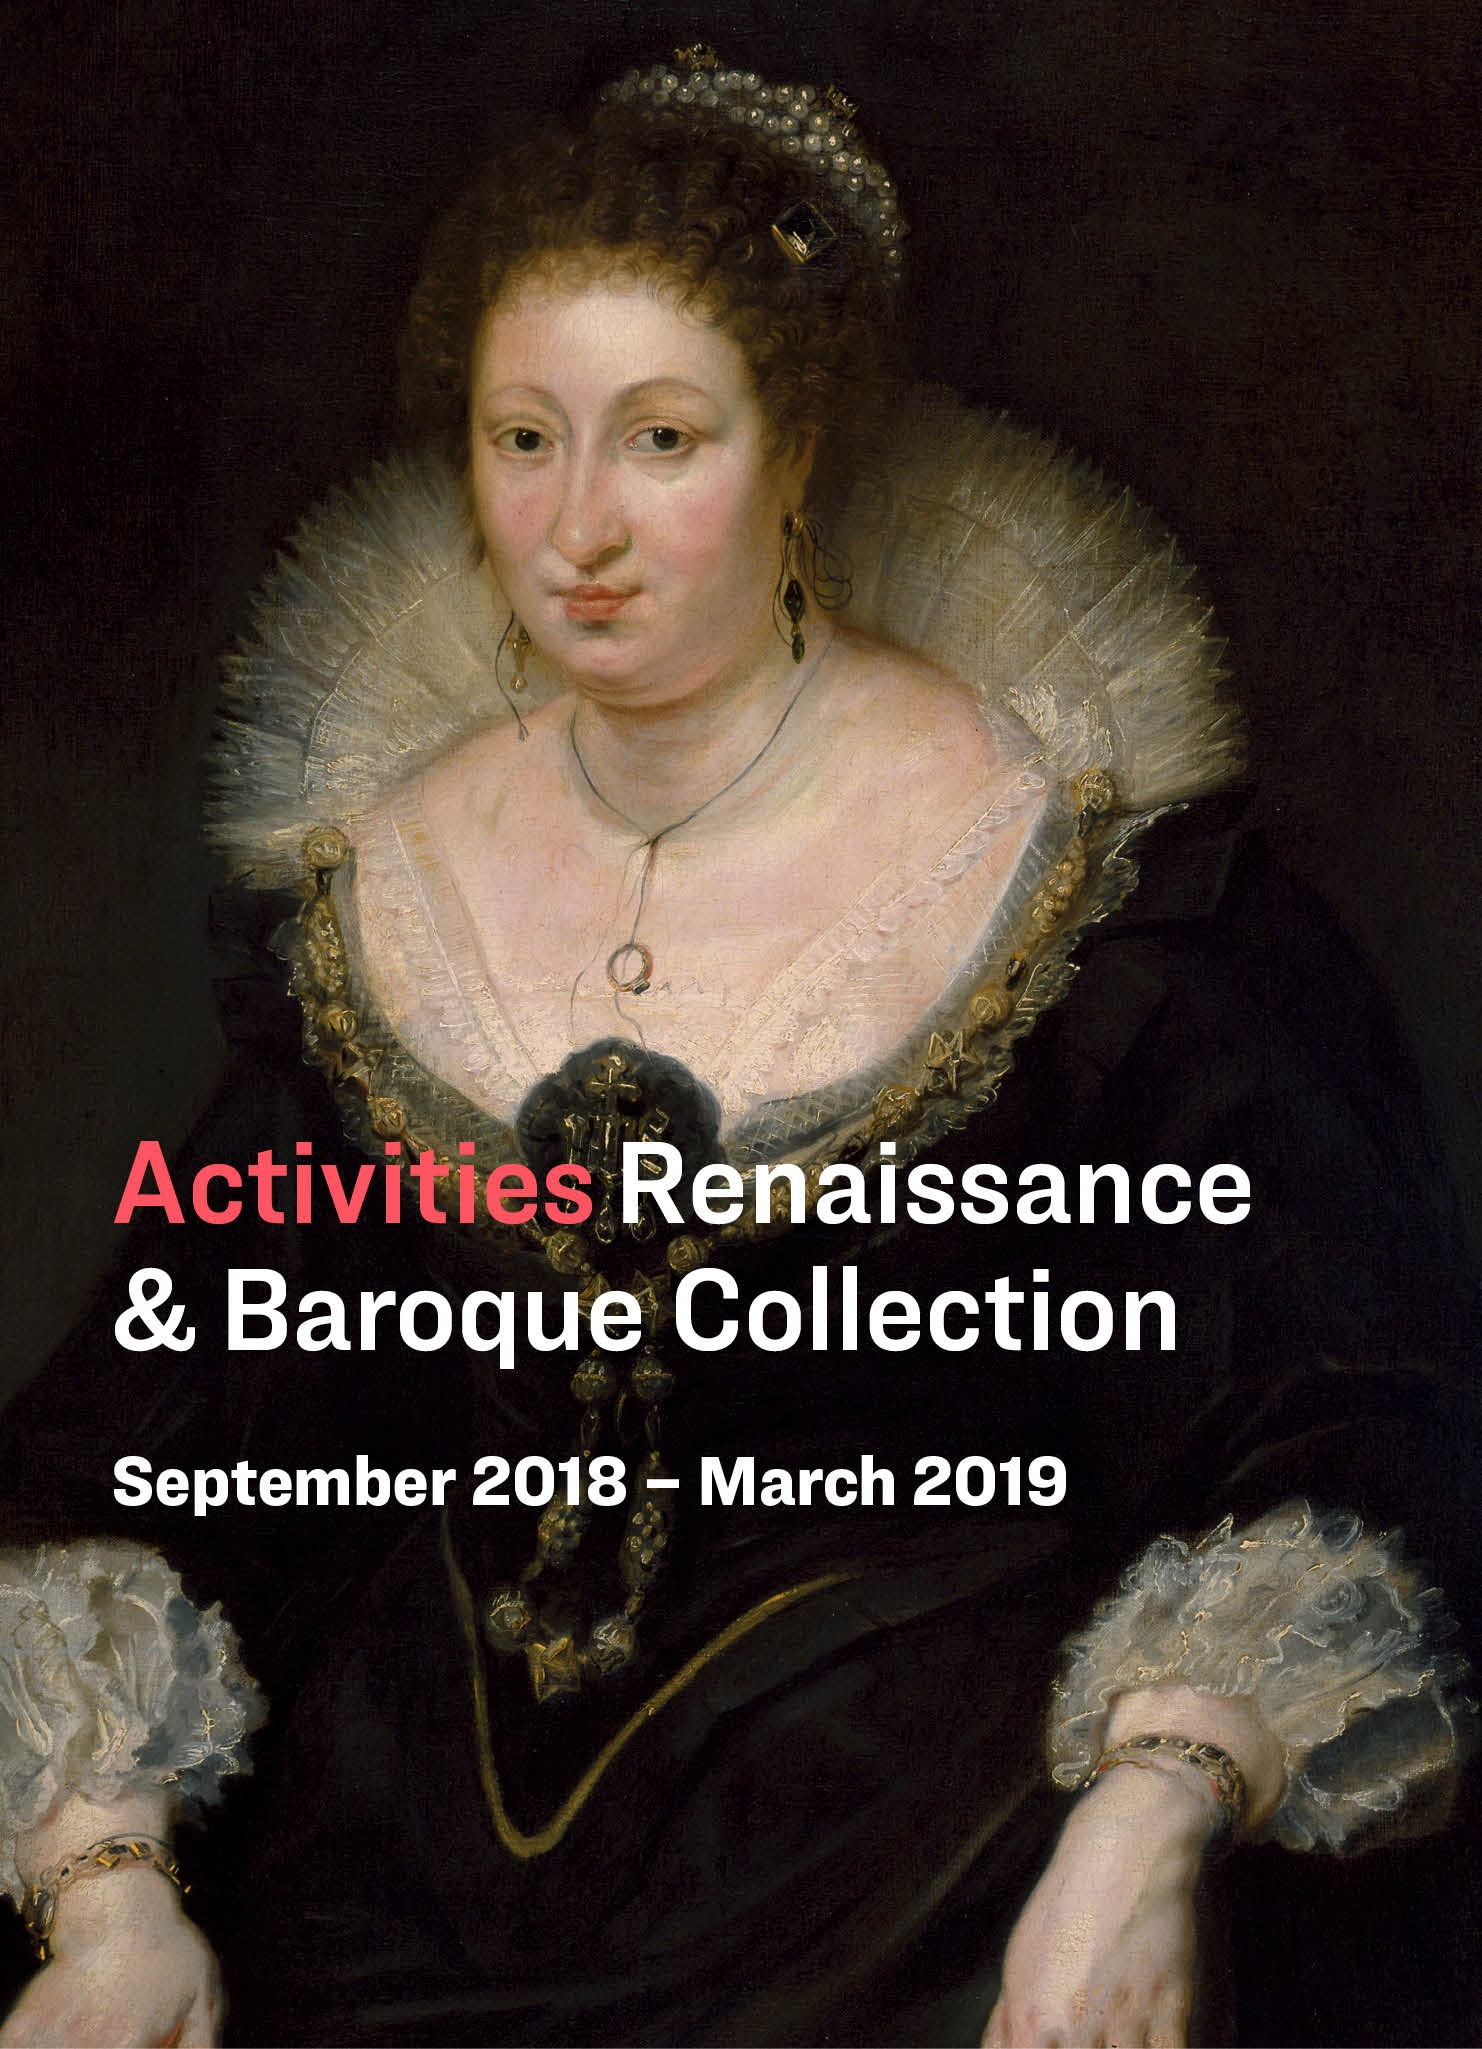 Activities around the new display of Renaissance and Baroque